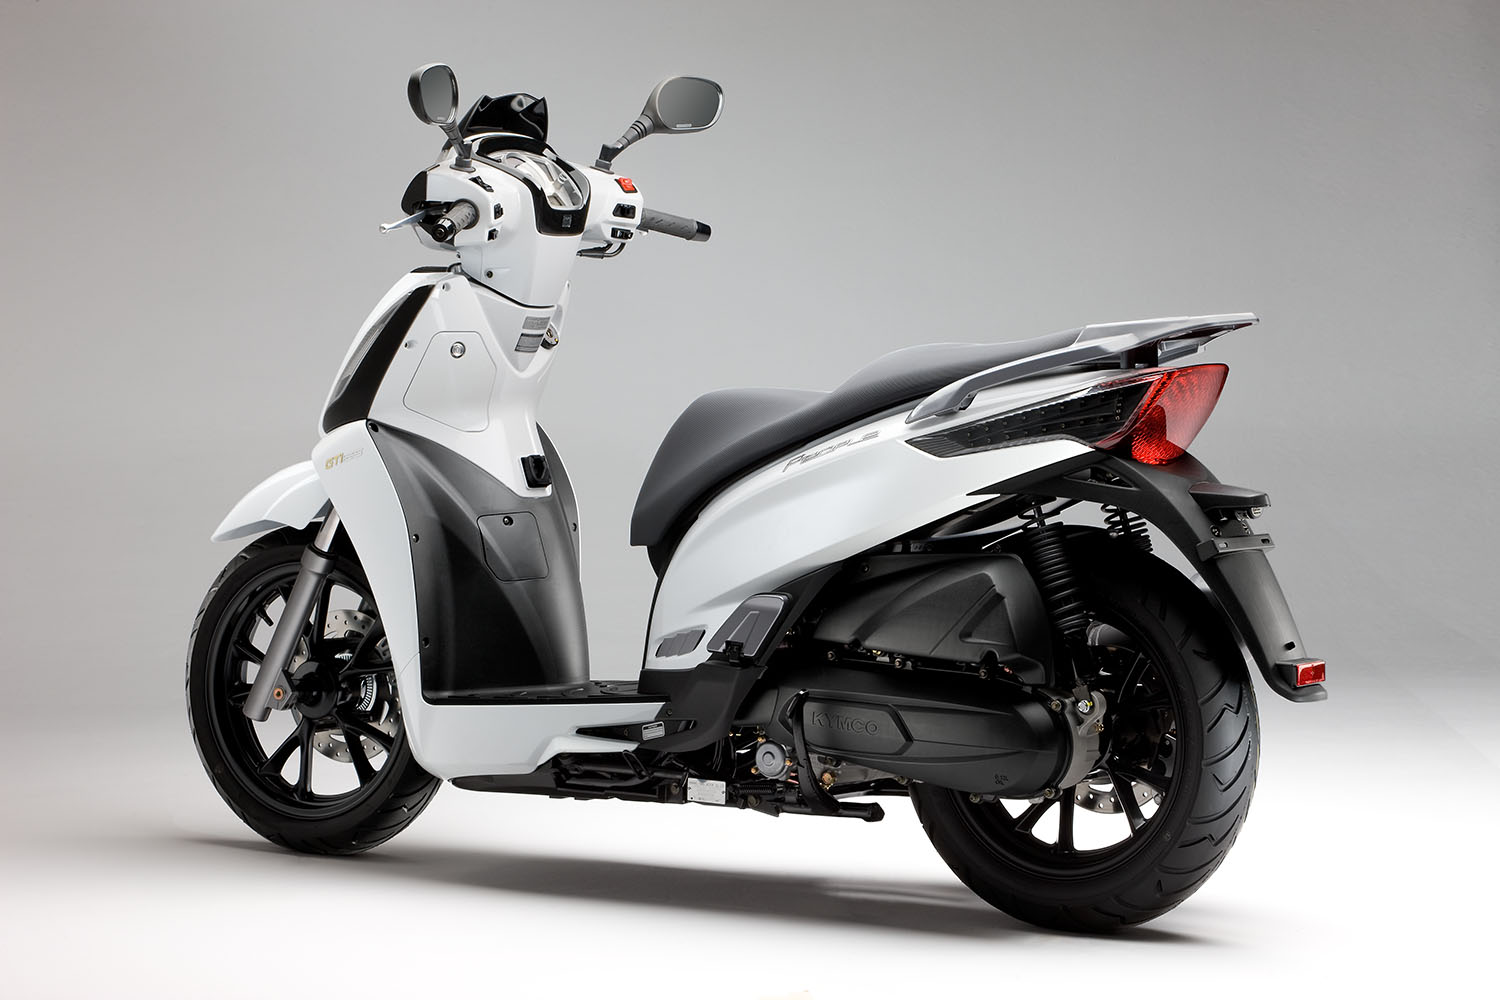 kymco people gti 125 all technical data of the model. Black Bedroom Furniture Sets. Home Design Ideas